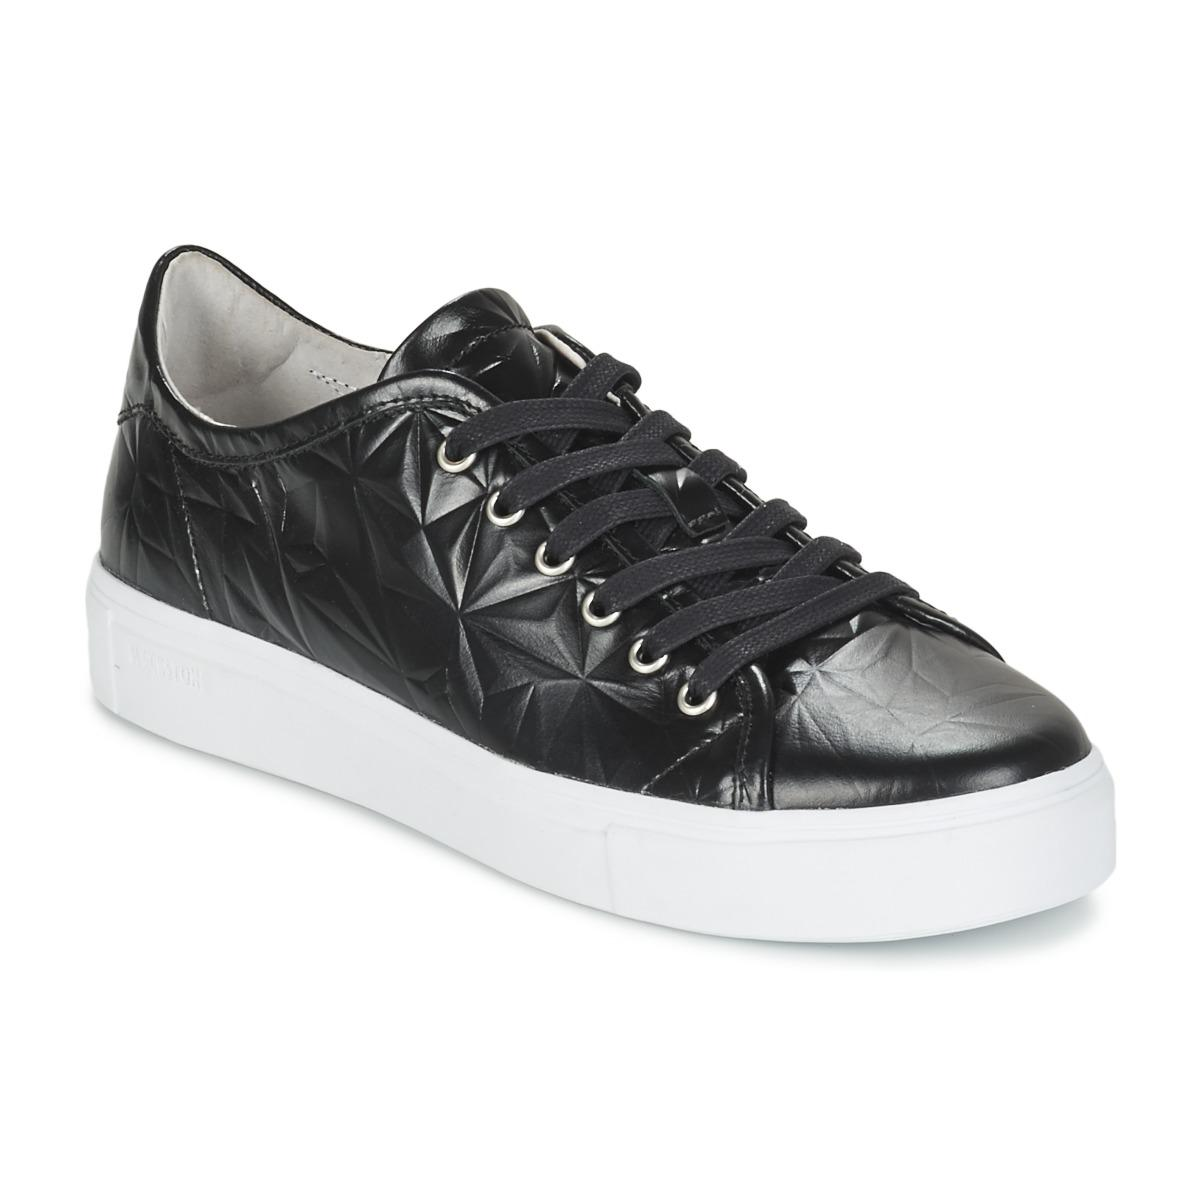 Cheap Sale Visit New Amazon Cheap Online Blackstone NL34 women's Shoes (Trainers) in TtYwa